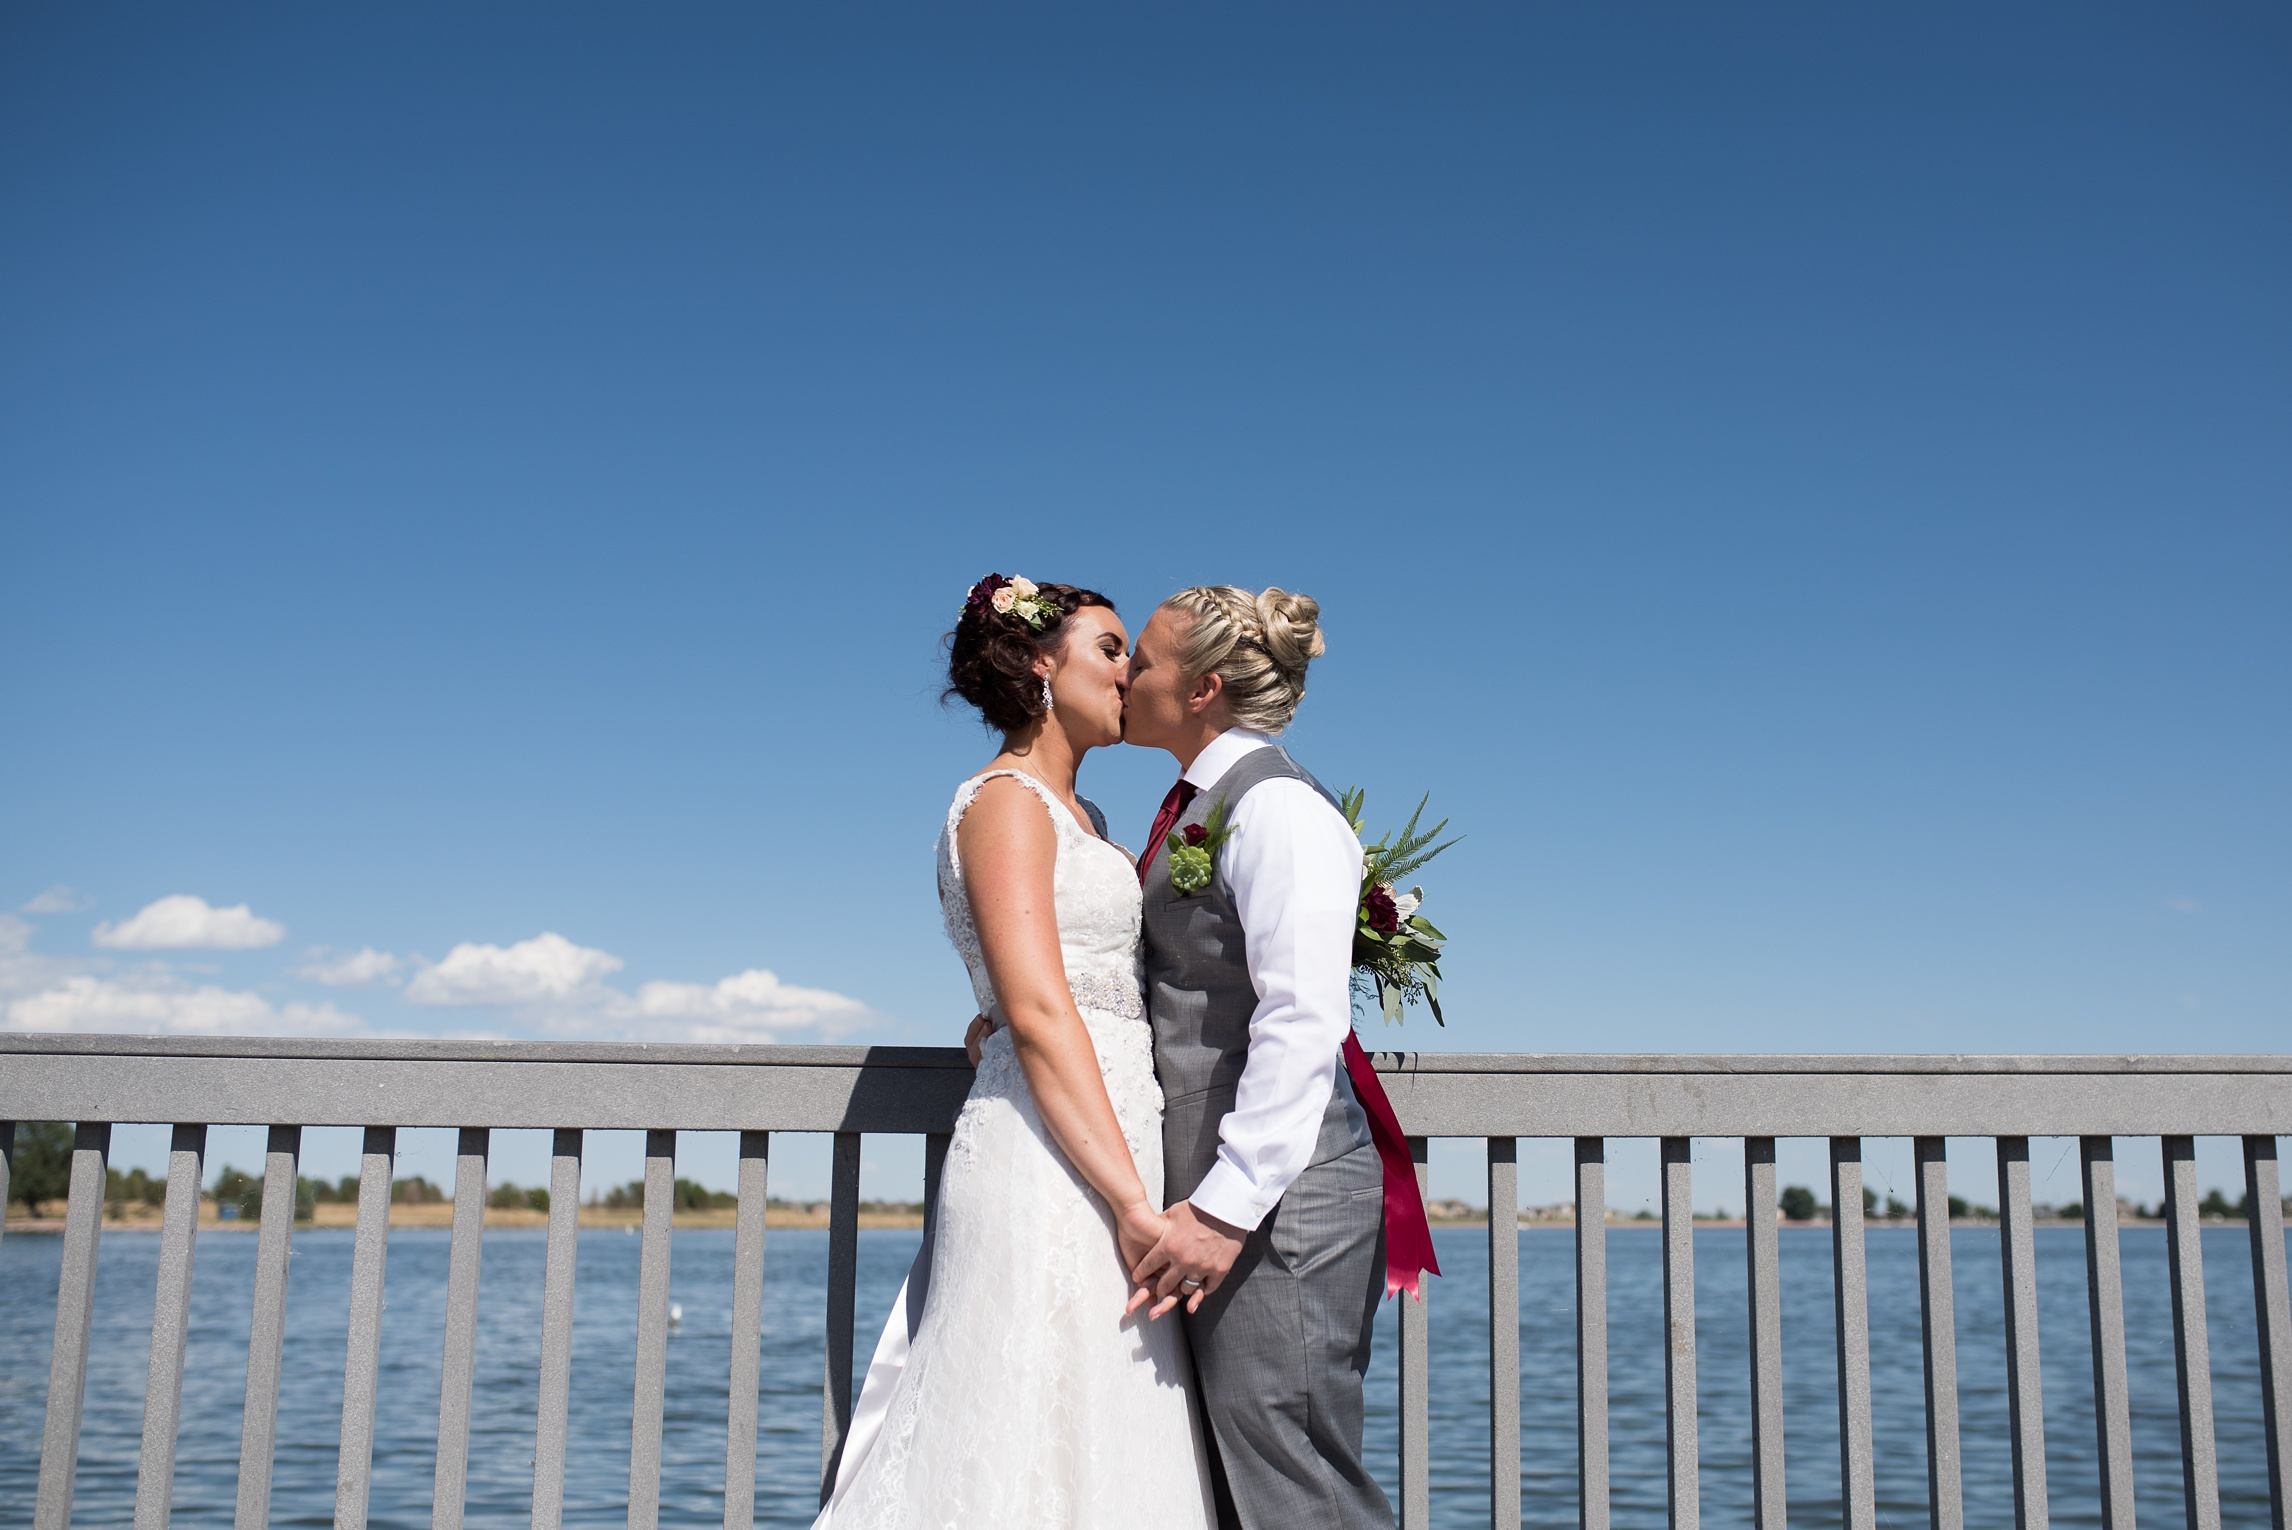 Two brides kiss after a reveal in Fort Collins, Colorado. Wedding photography by Sonja Salzburg of Sonja K Photography.